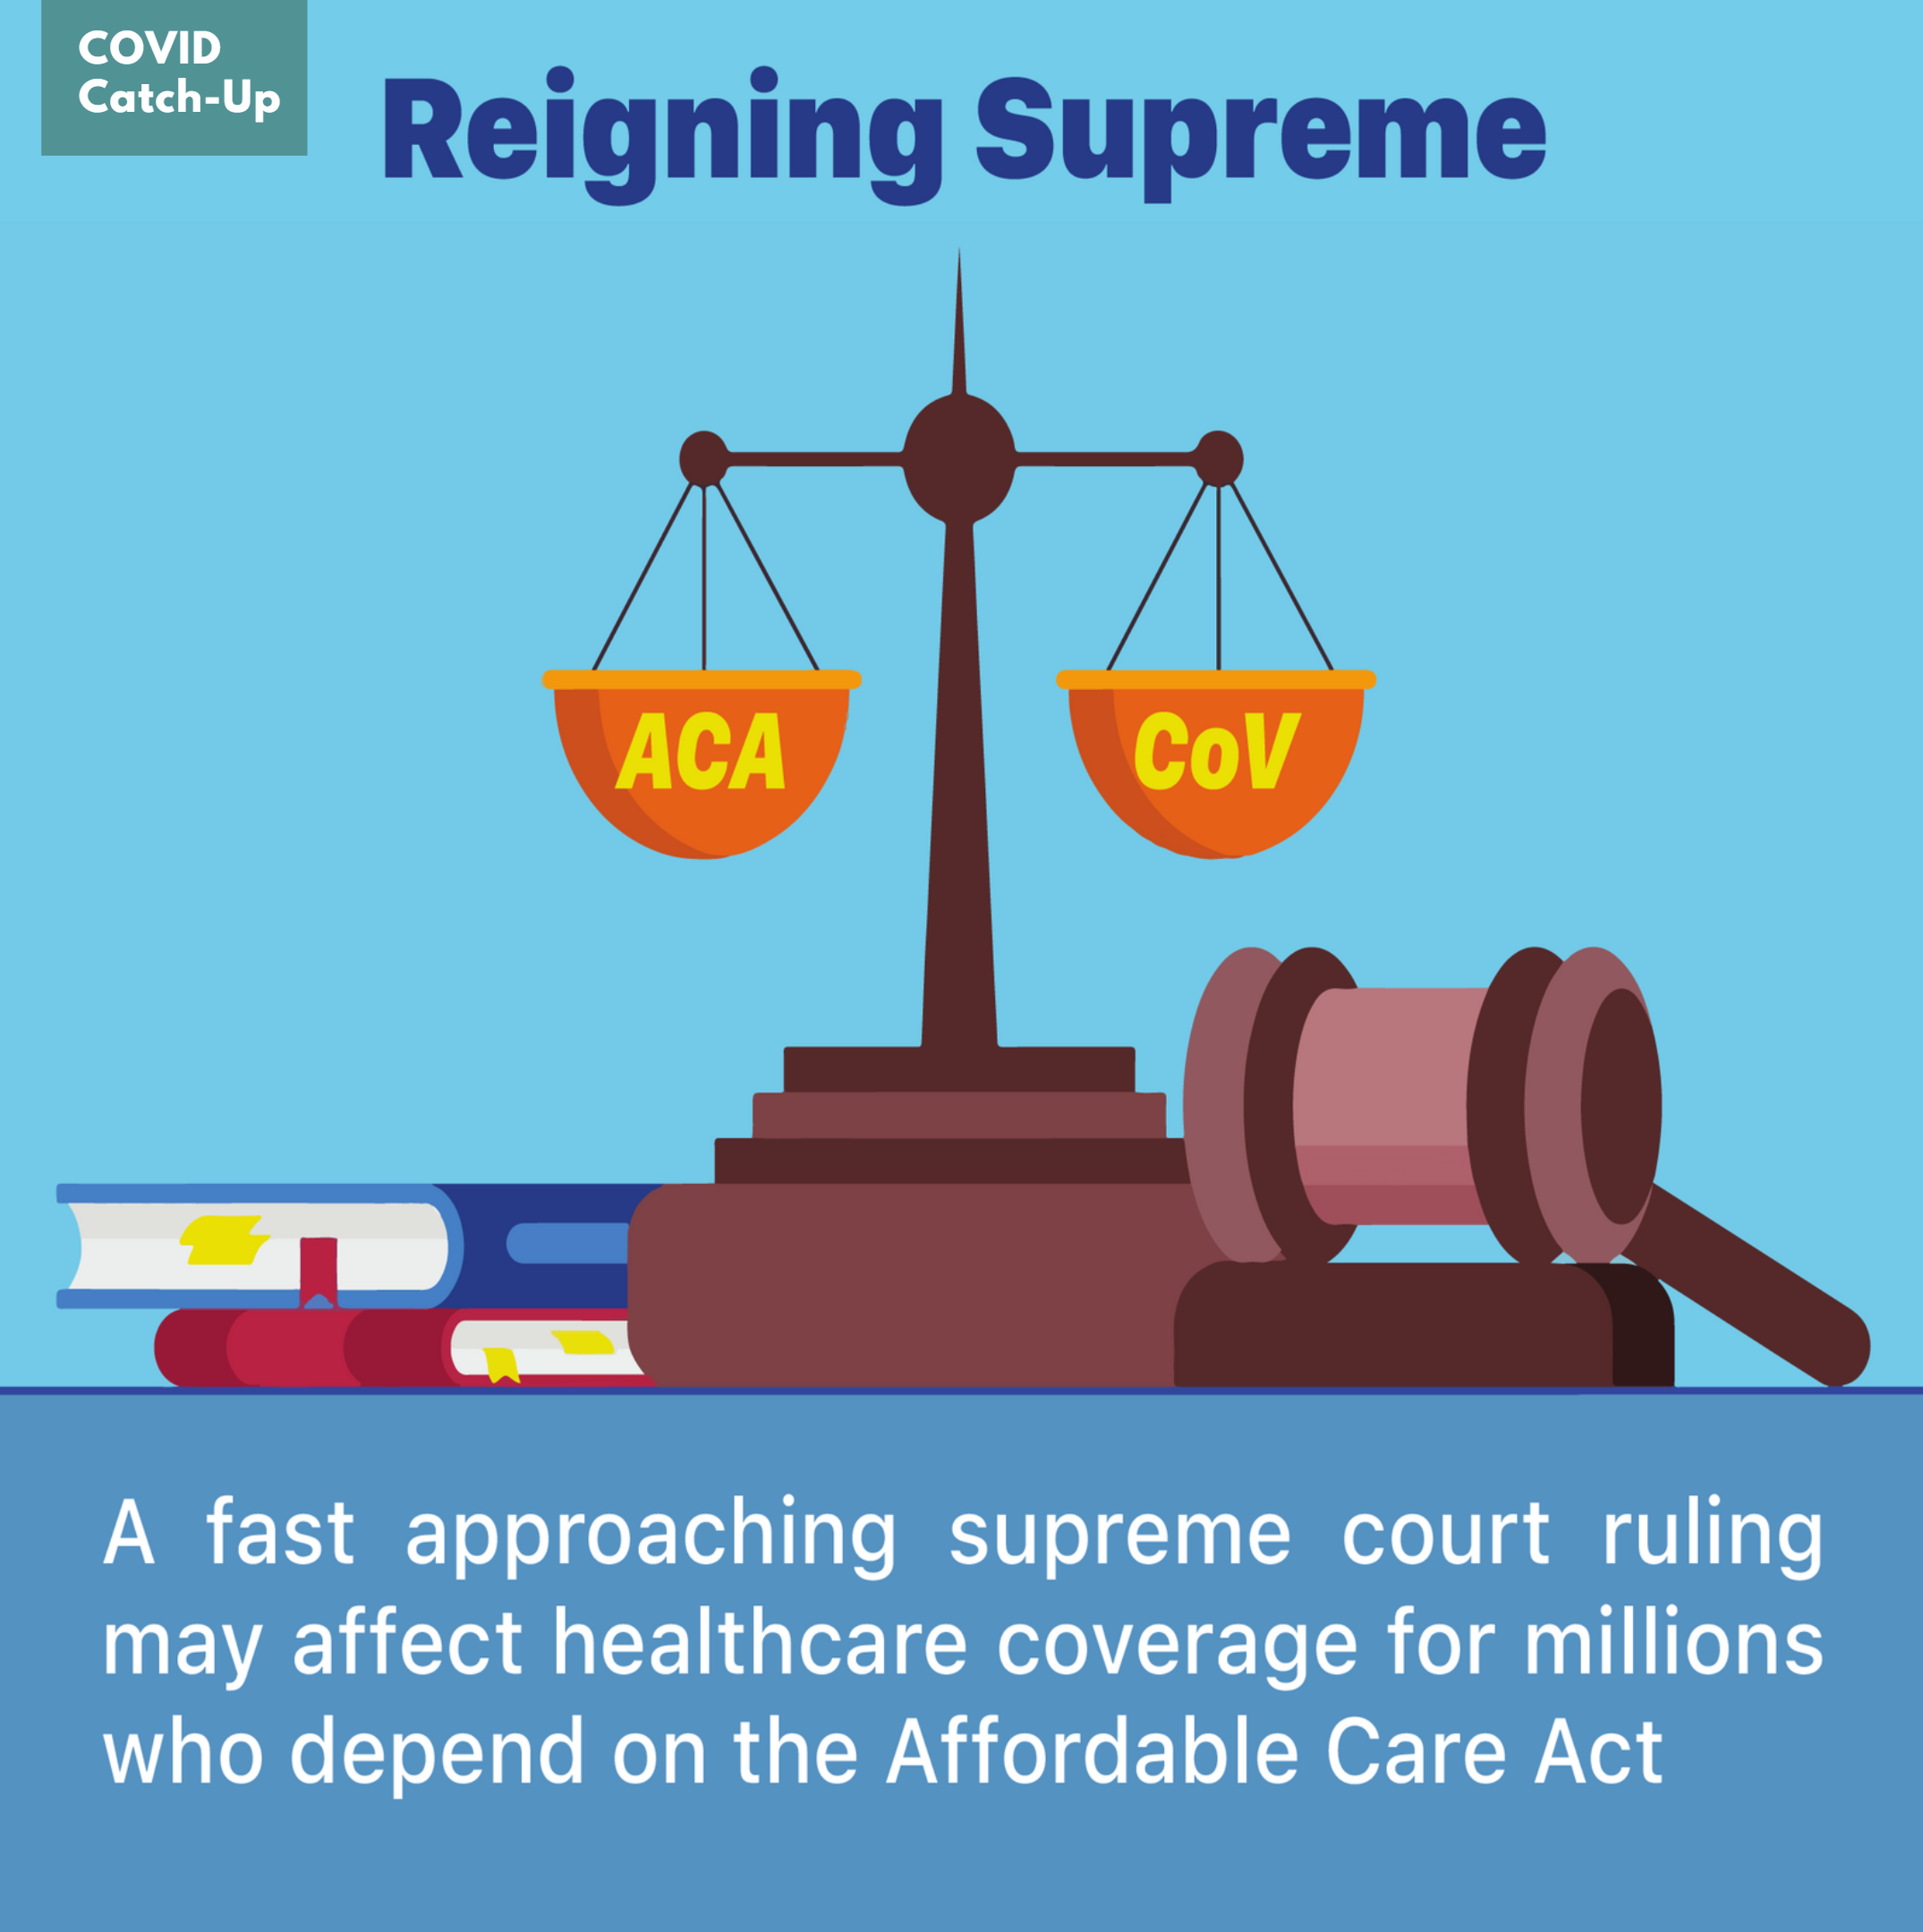 11/1 News Flash 6: Upcoming Supreme Court Ruling Could Jeopardize Health Insurance for People with COVID